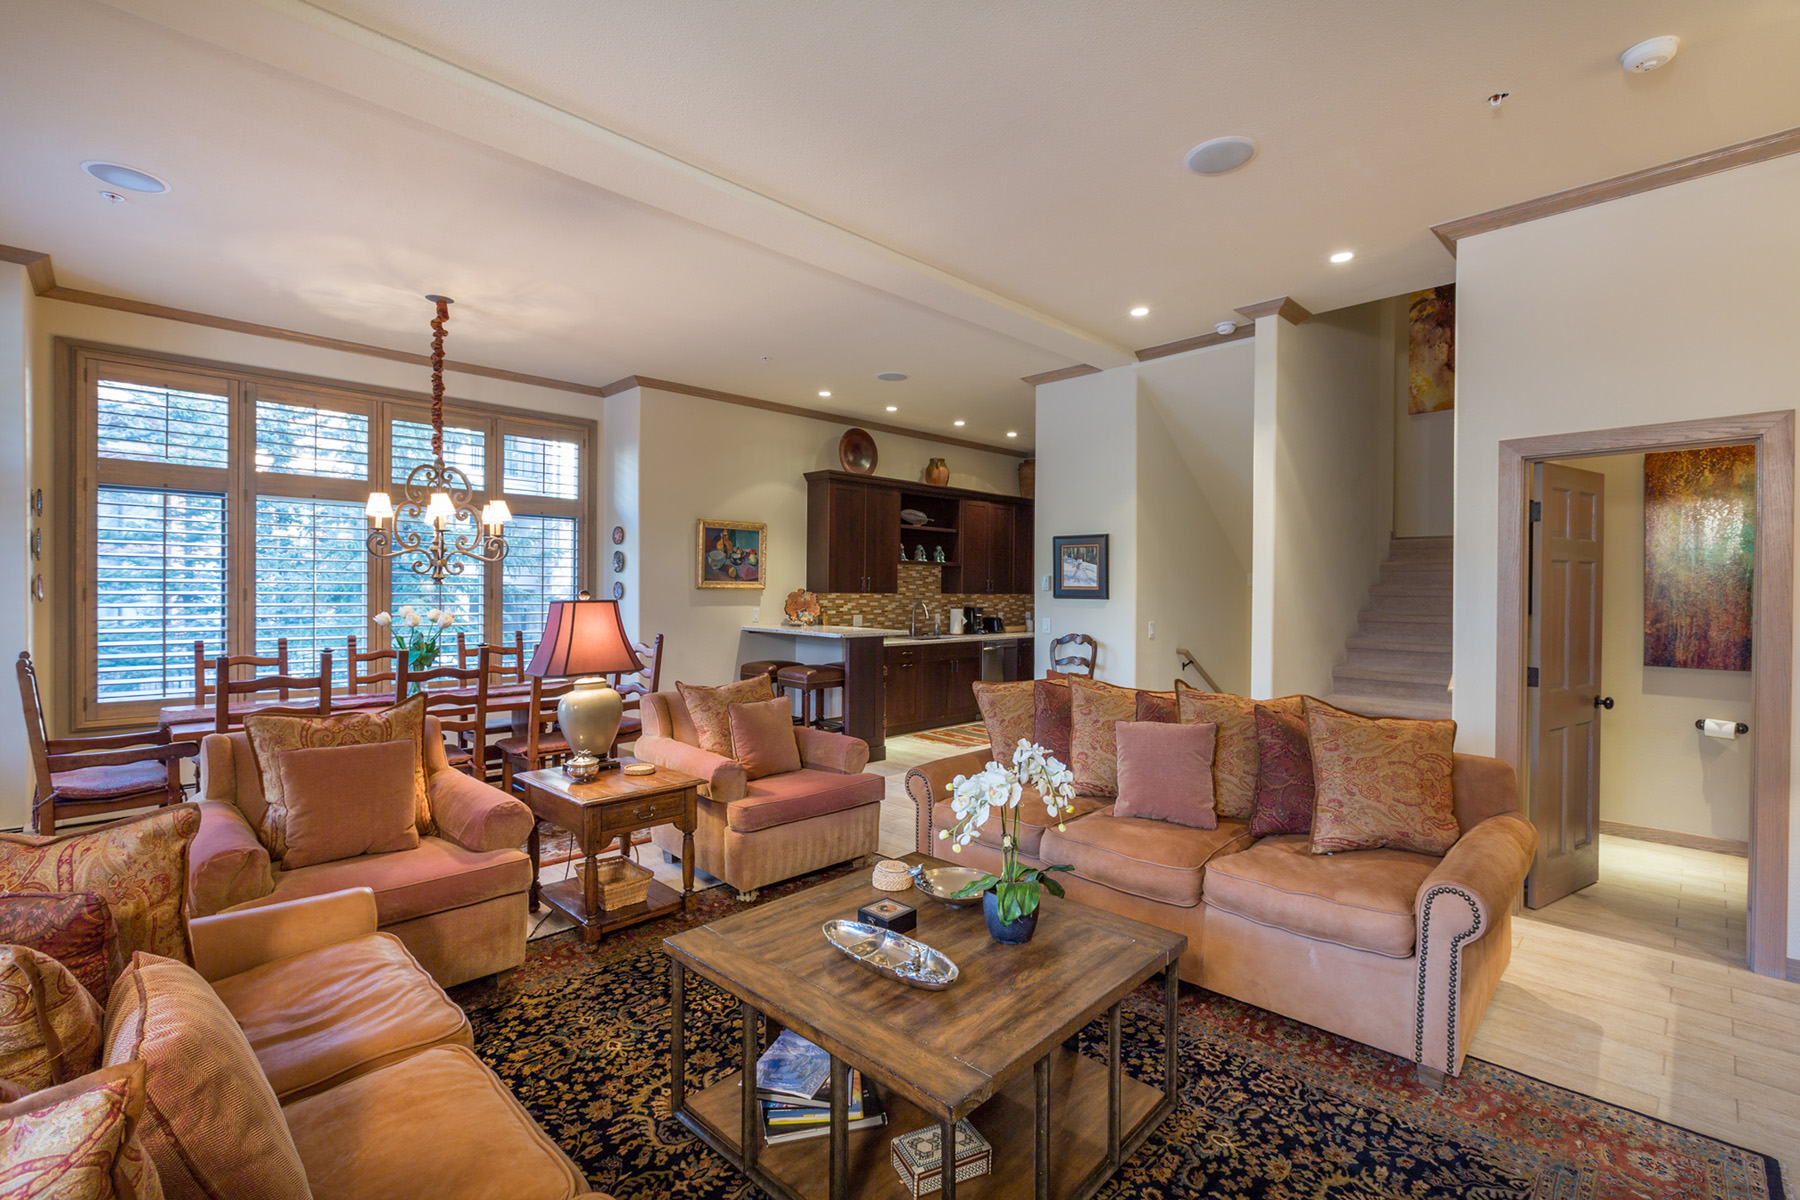 Condominium for Sale at 601 Mountain Village Boulevard, Unit 3 601 Mountain Village Boulevard, Unit 8 Telluride, Colorado, 81435 United States